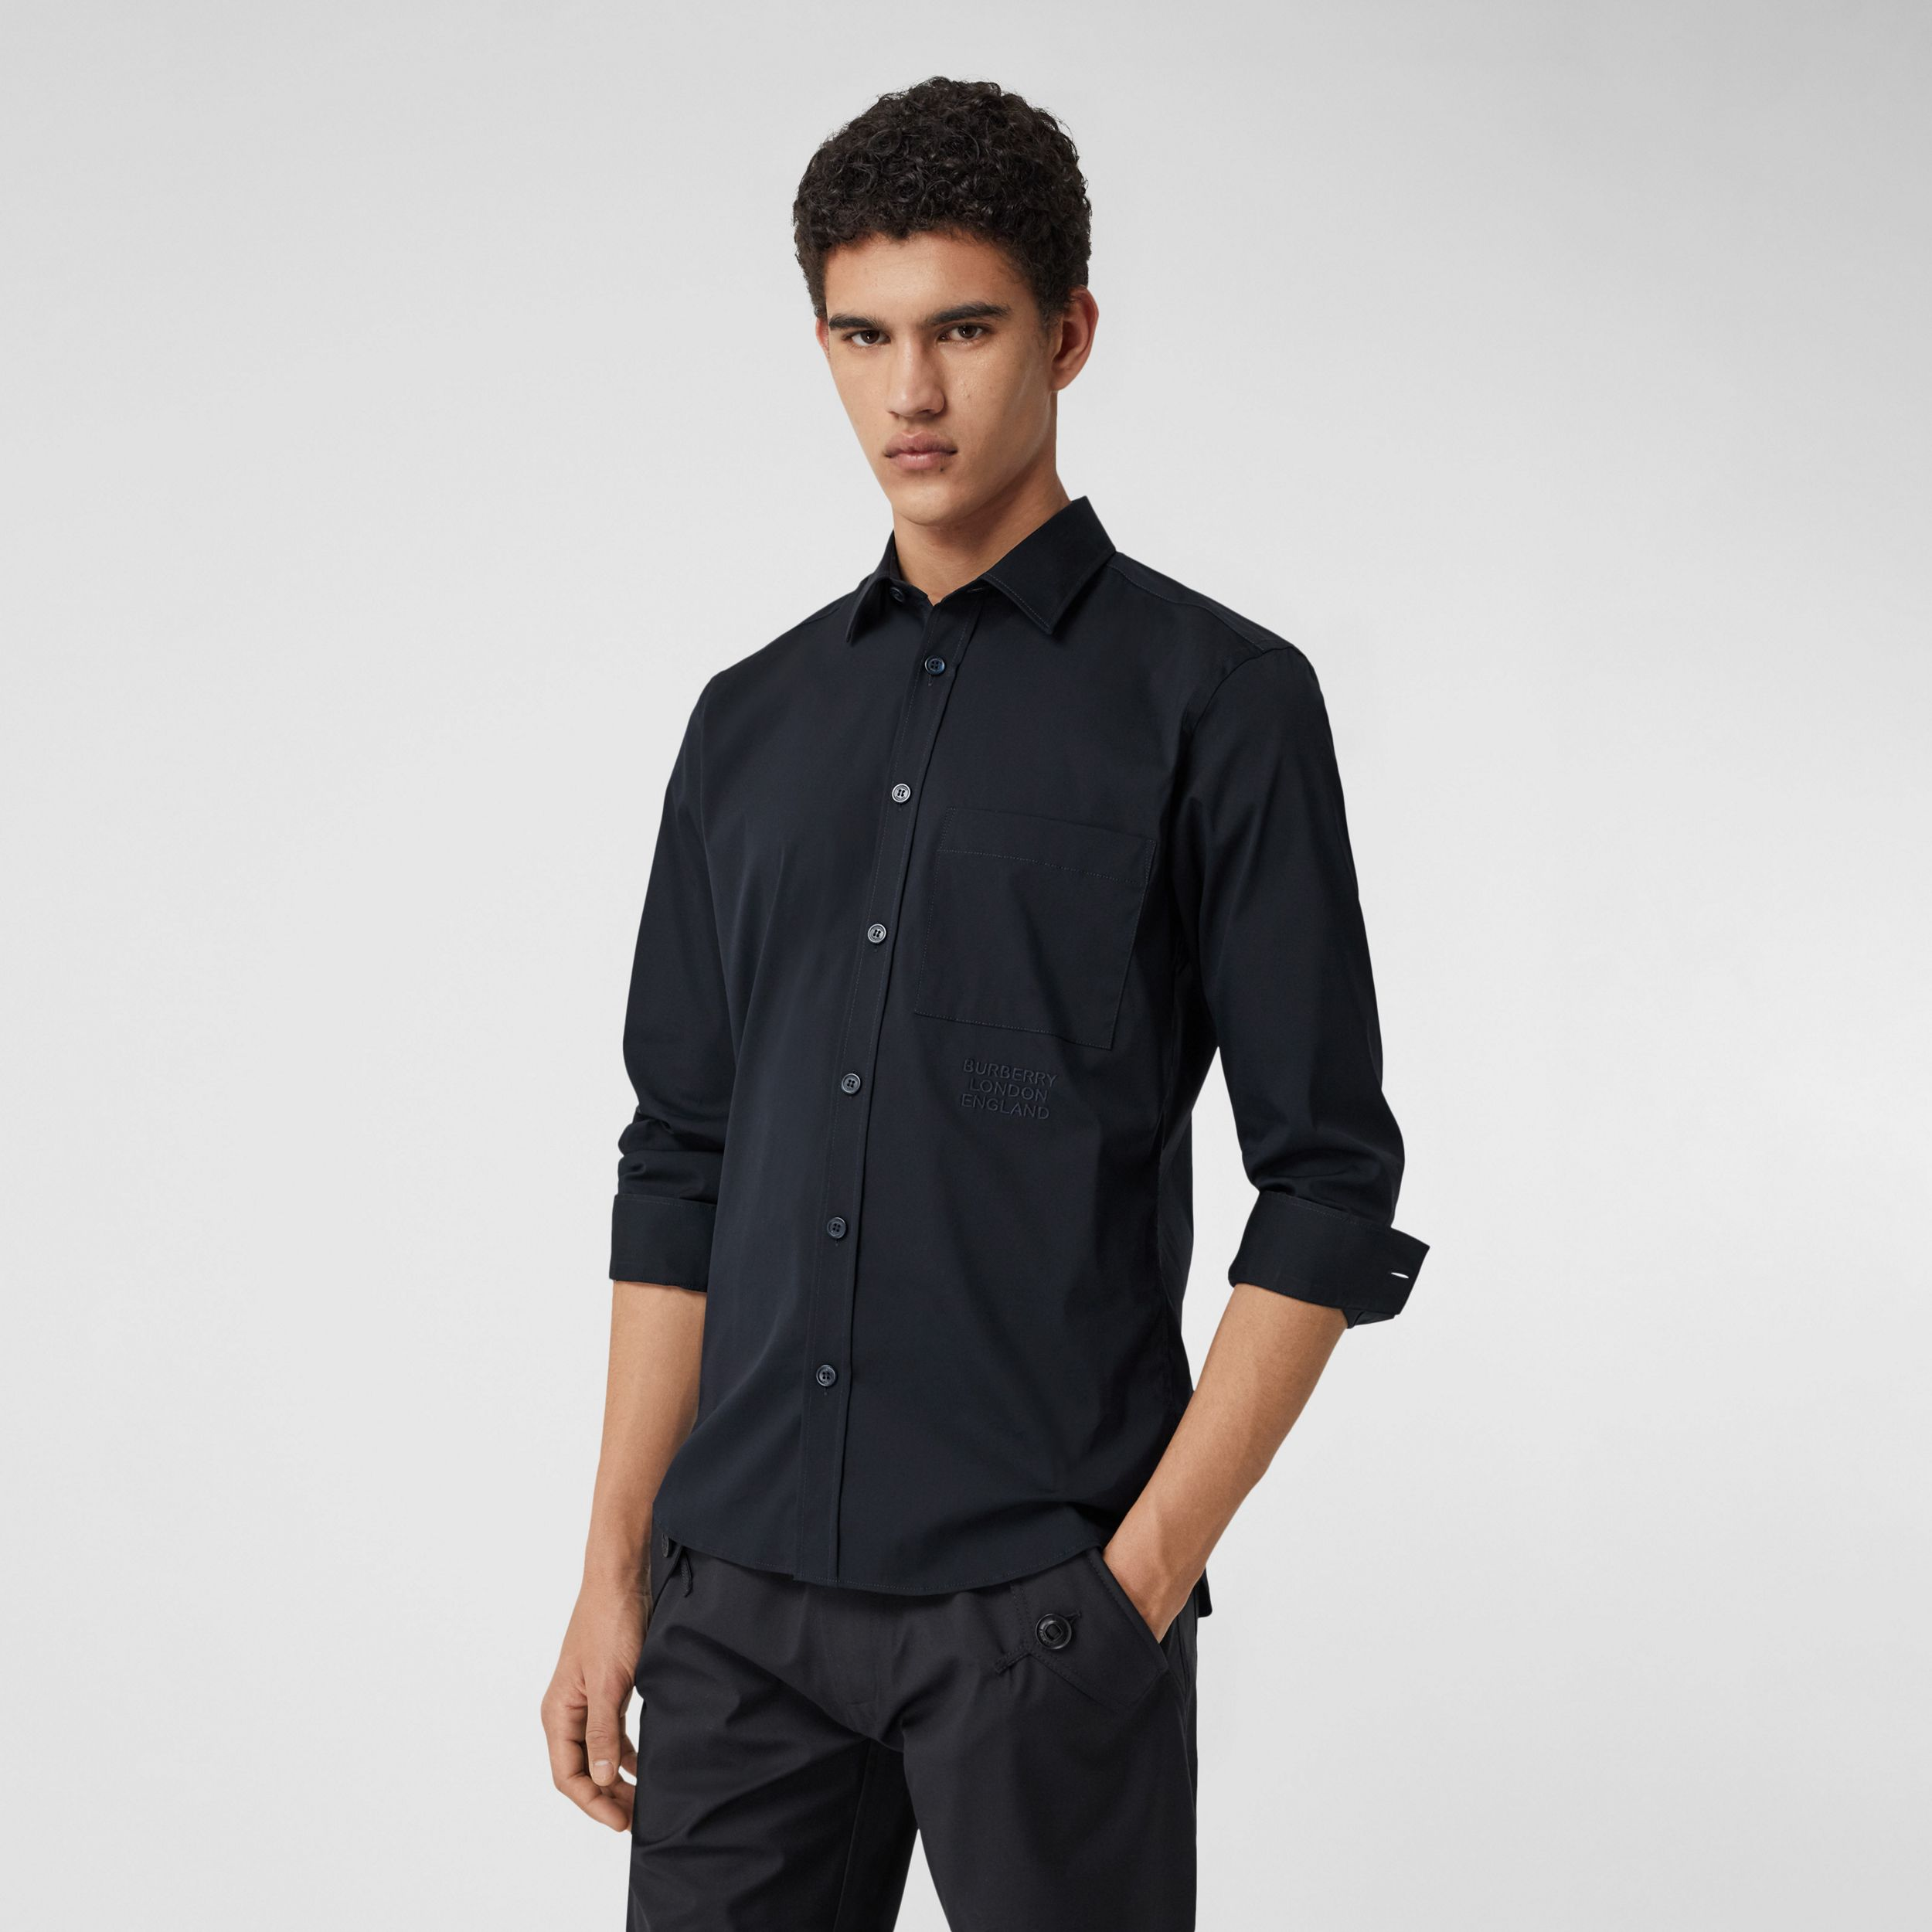 Embroidered Logo Cotton Blend Shirt in Navy - Men | Burberry - 1